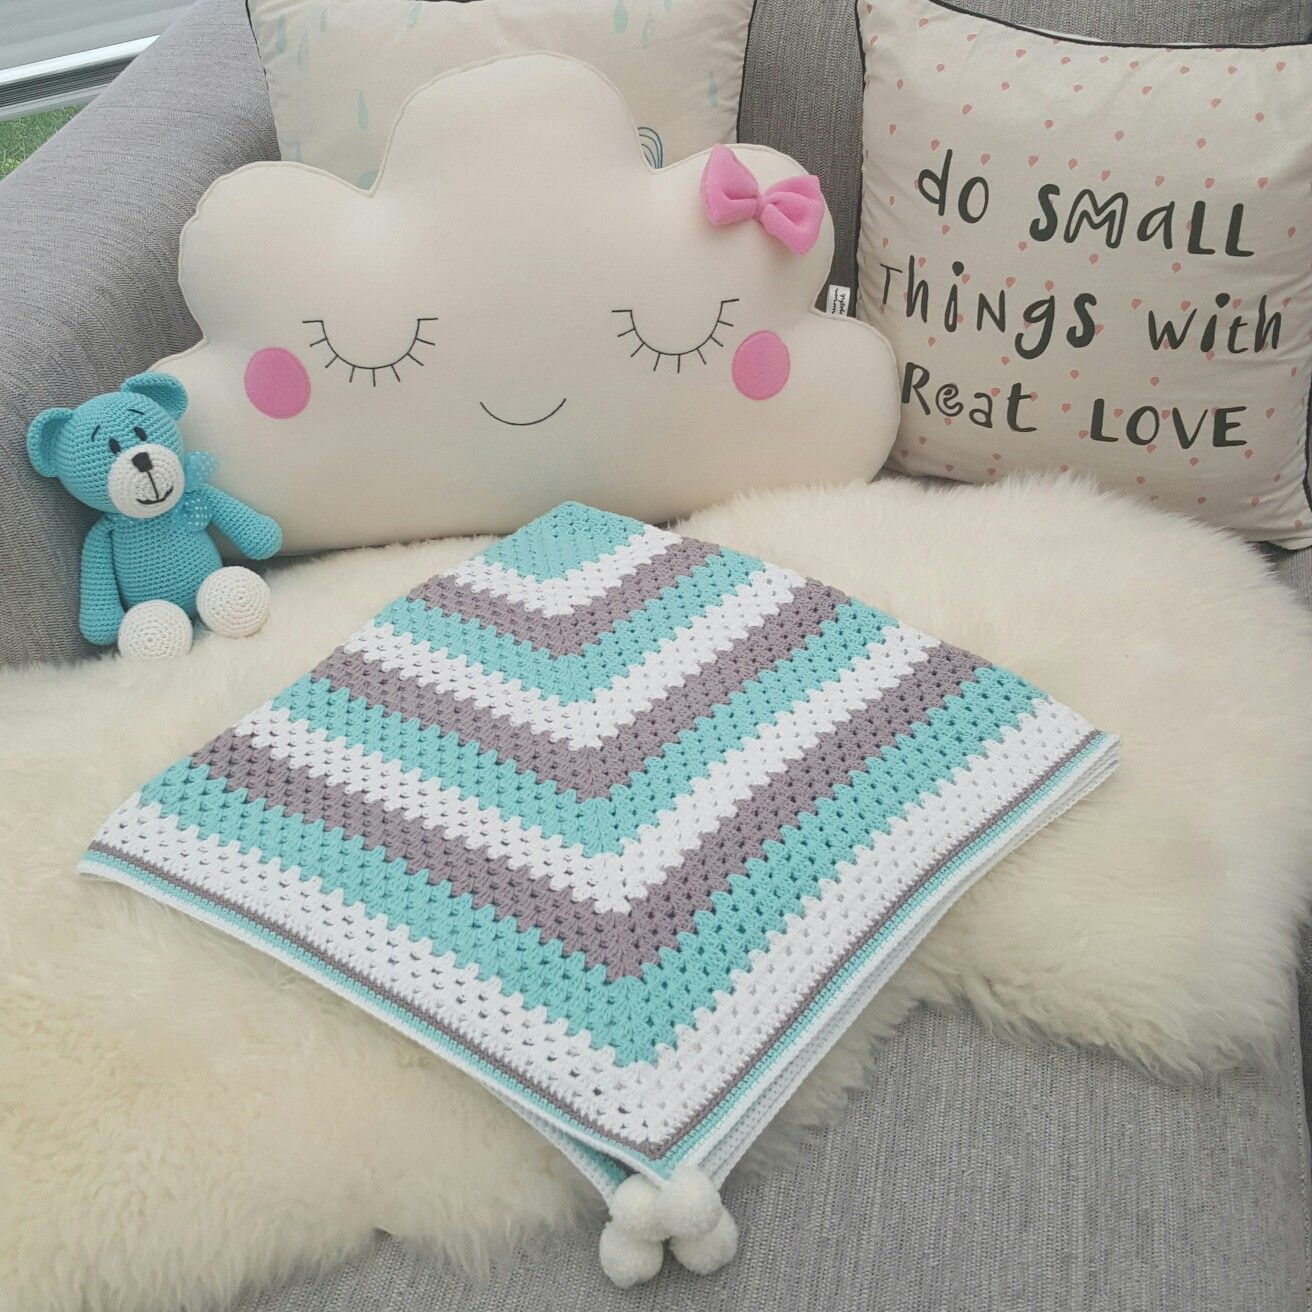 Crocheted Baby blanket. Pattern: http://daisycottagedesigns.net/free ...